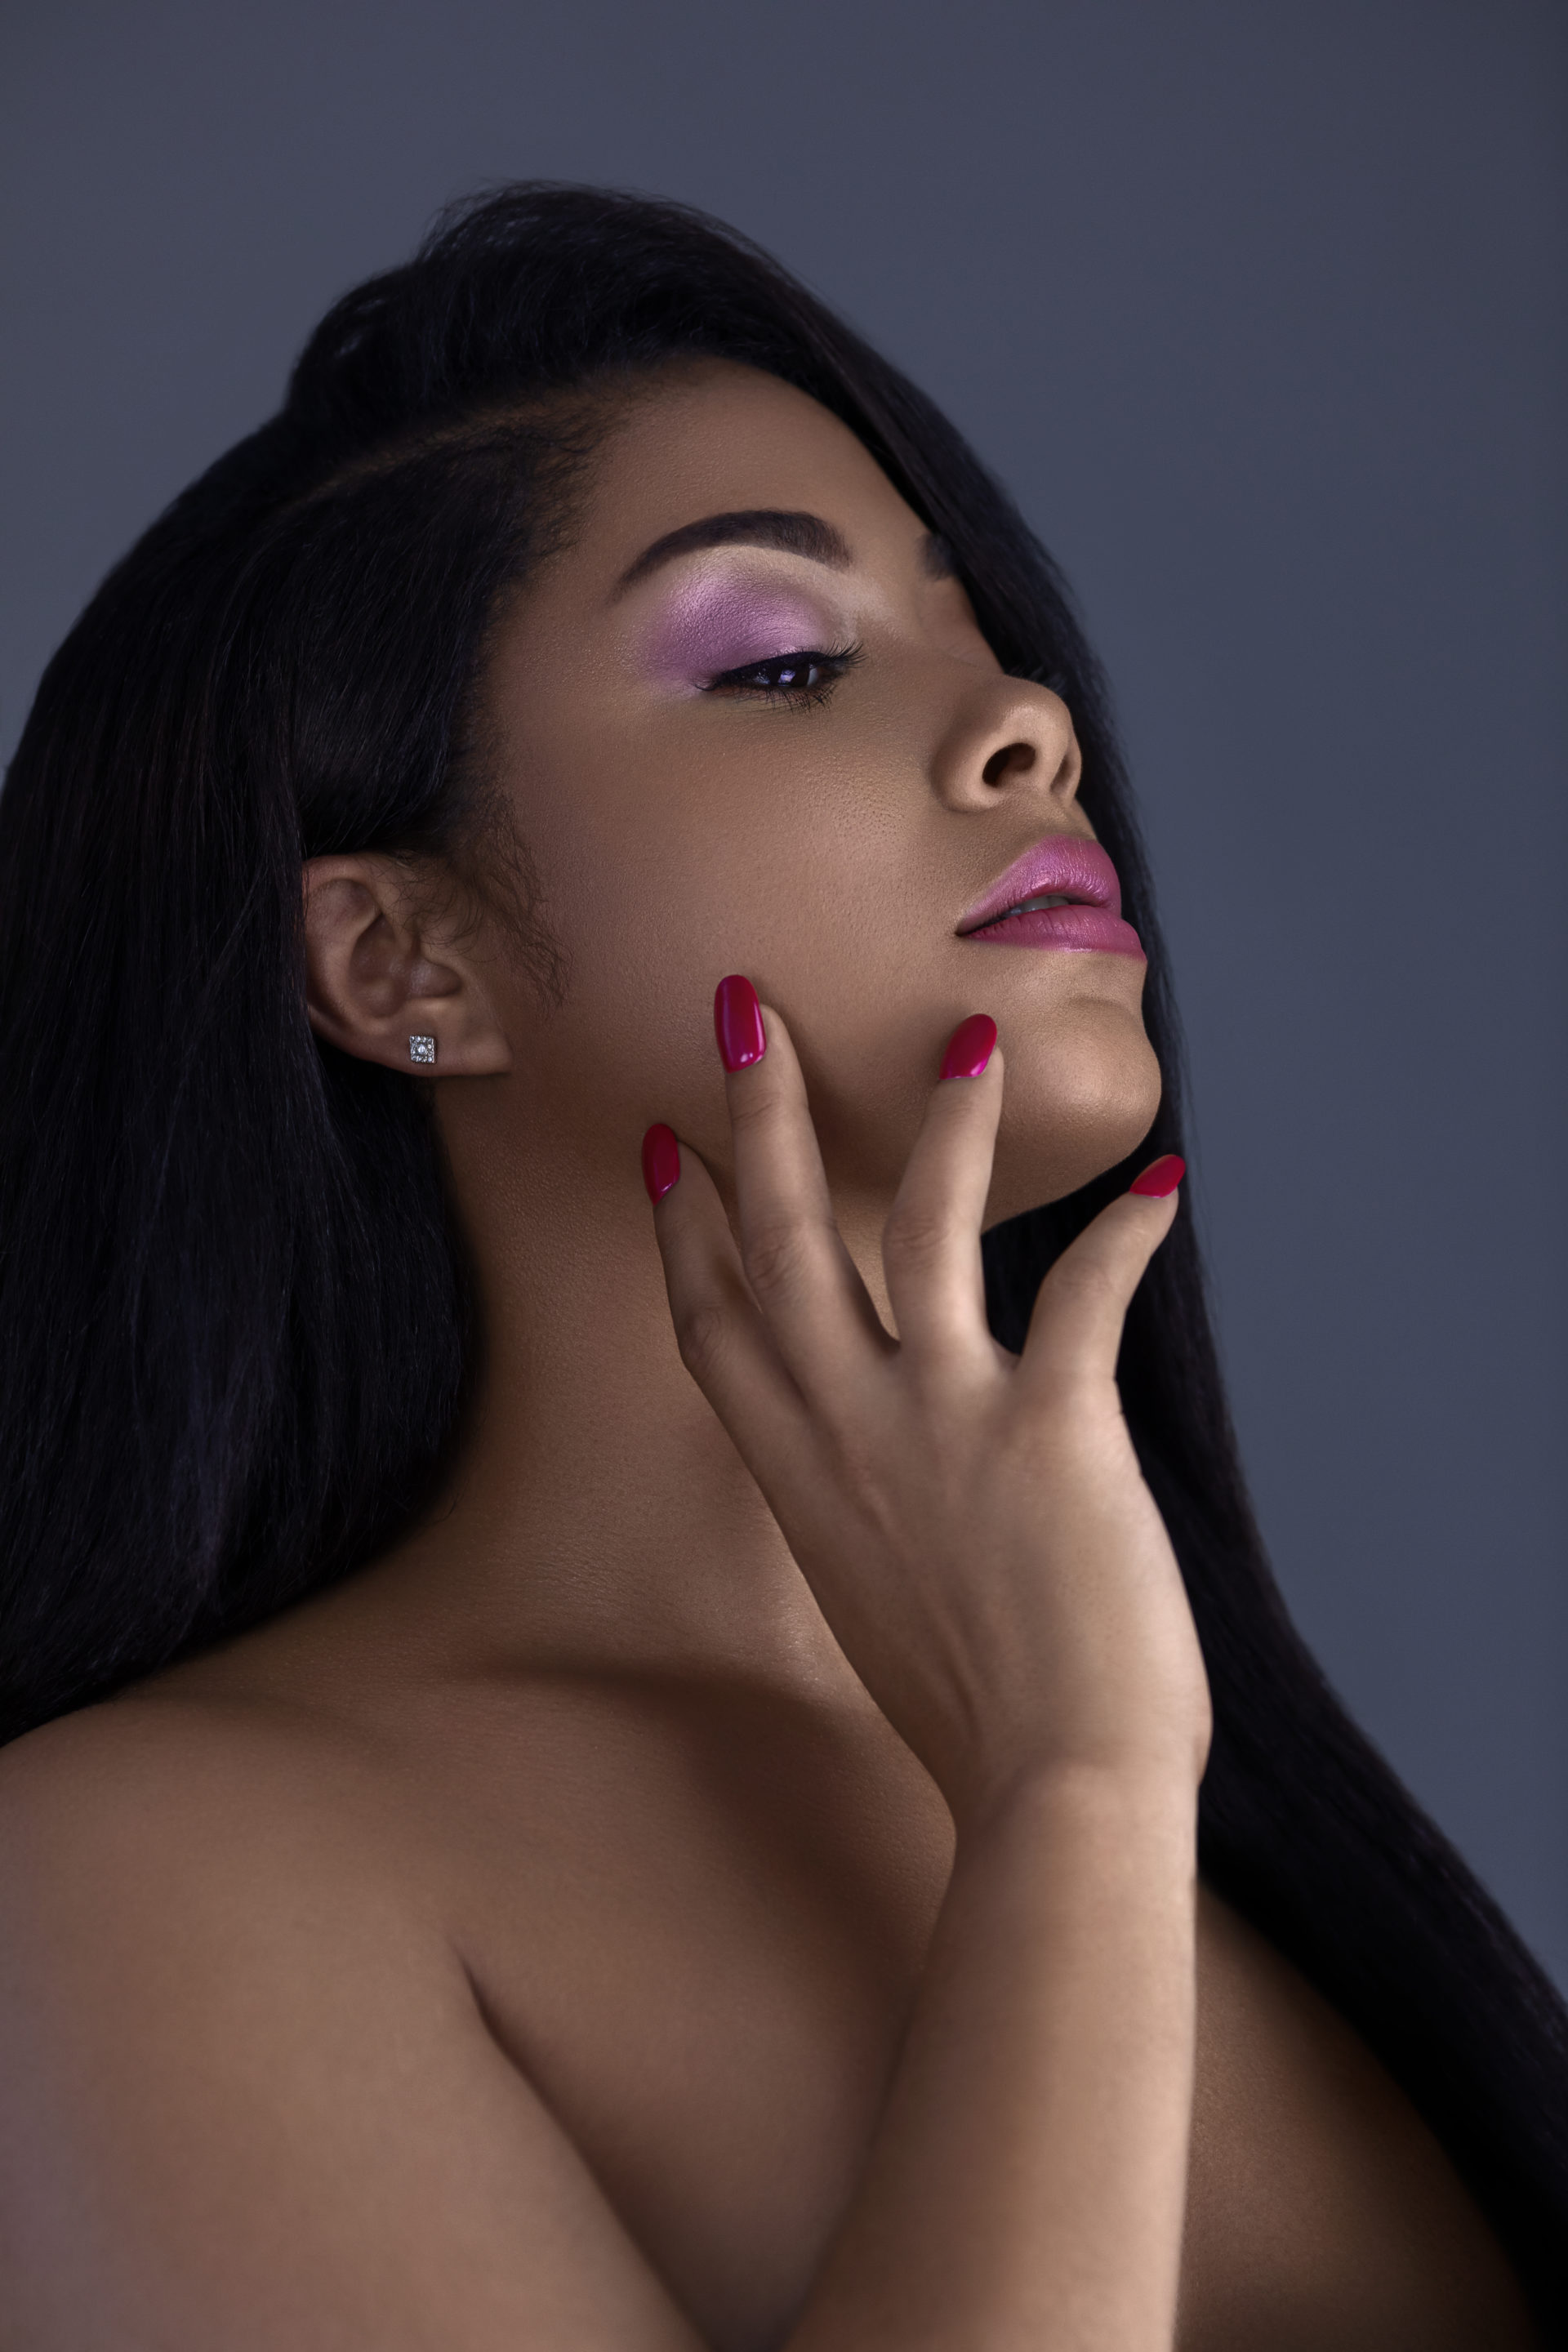 Sensual Latina with Red Lipstick & Nails